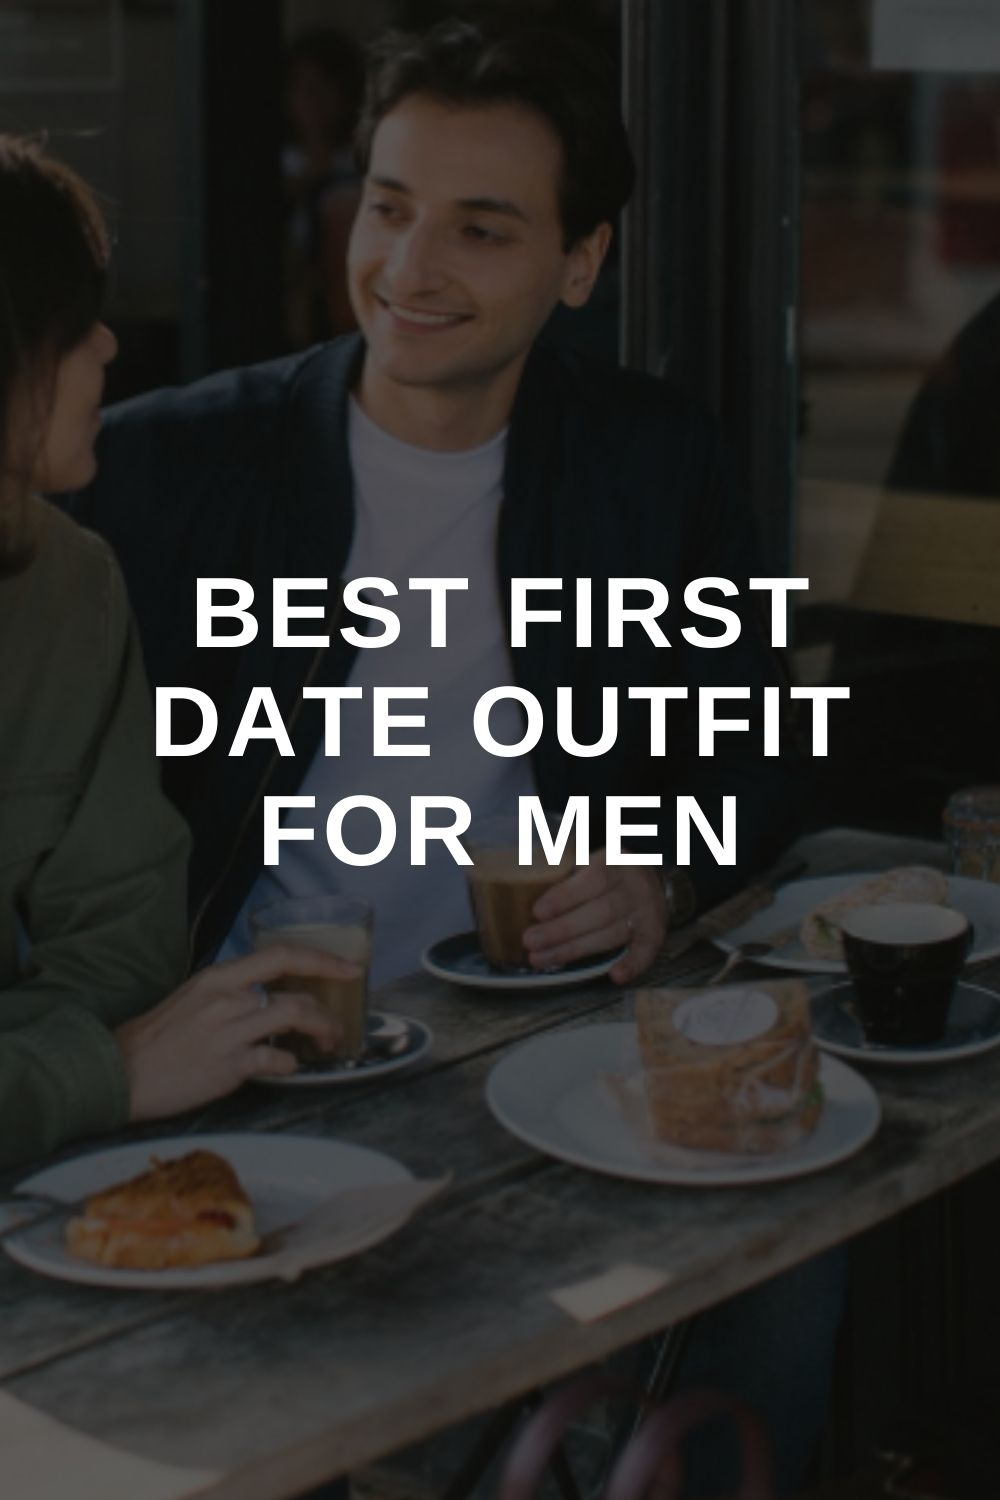 Best First Date Outfit For Men